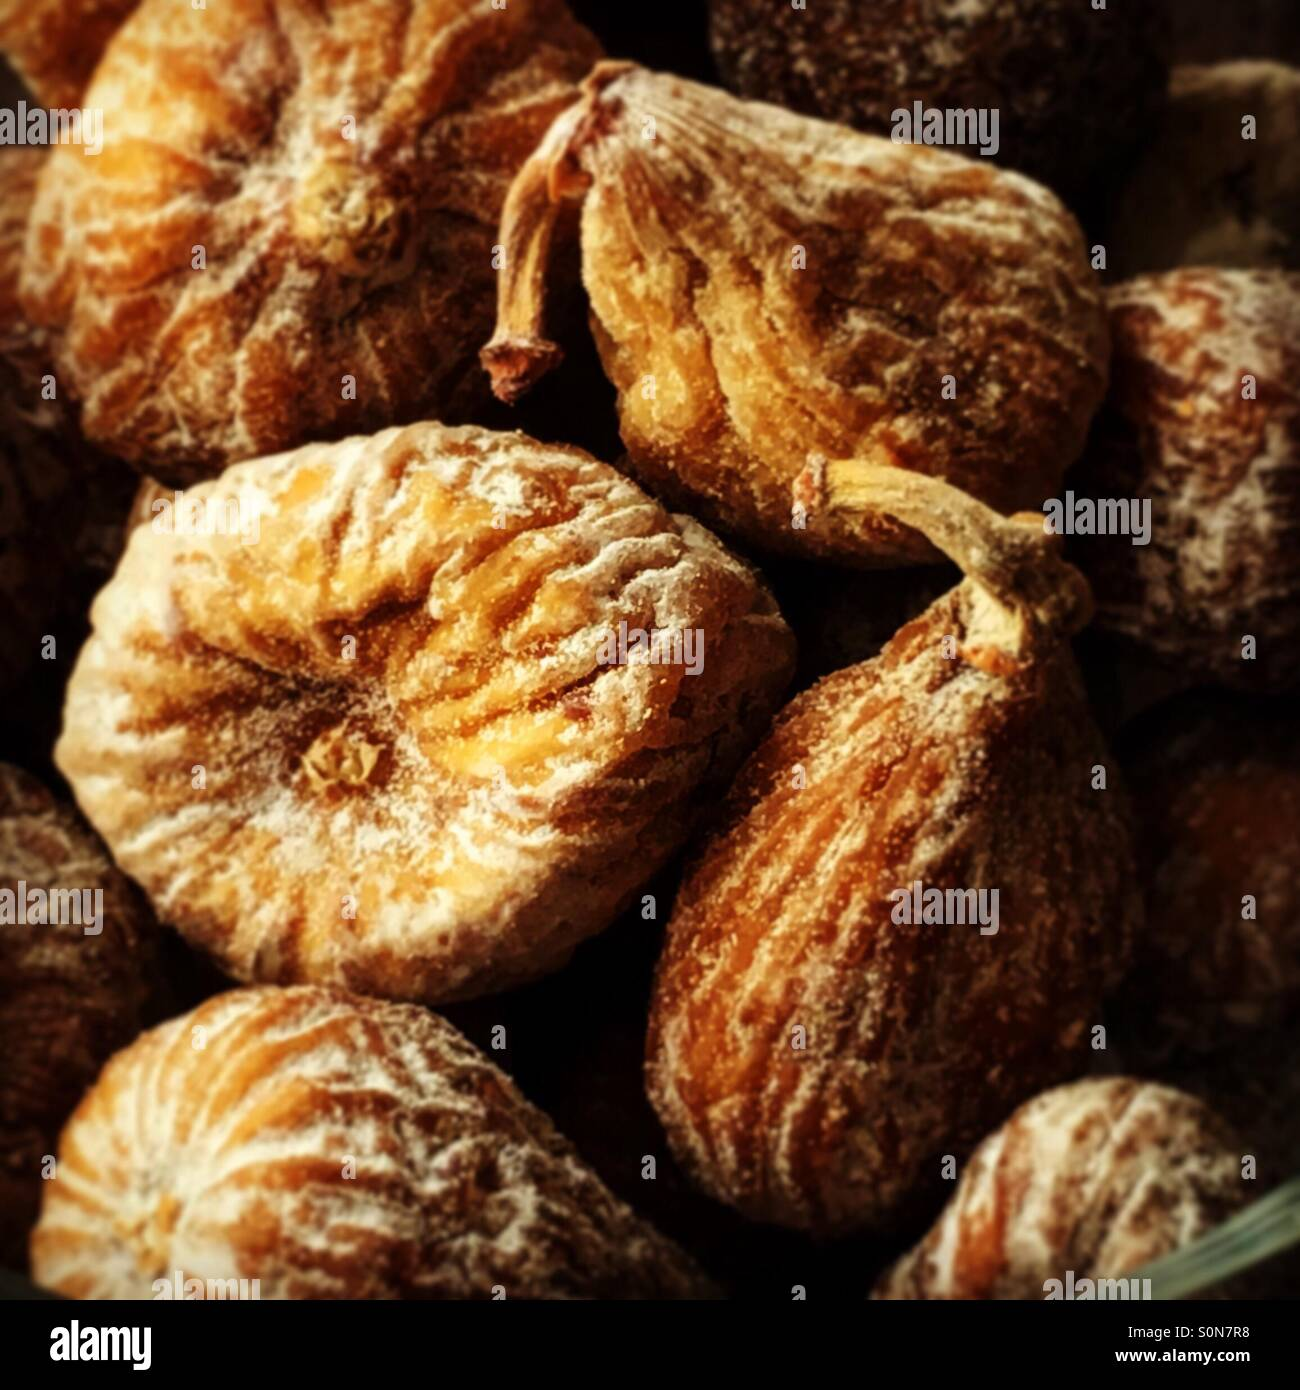 Dried figs, healthy and good for digestion. - Stock Image